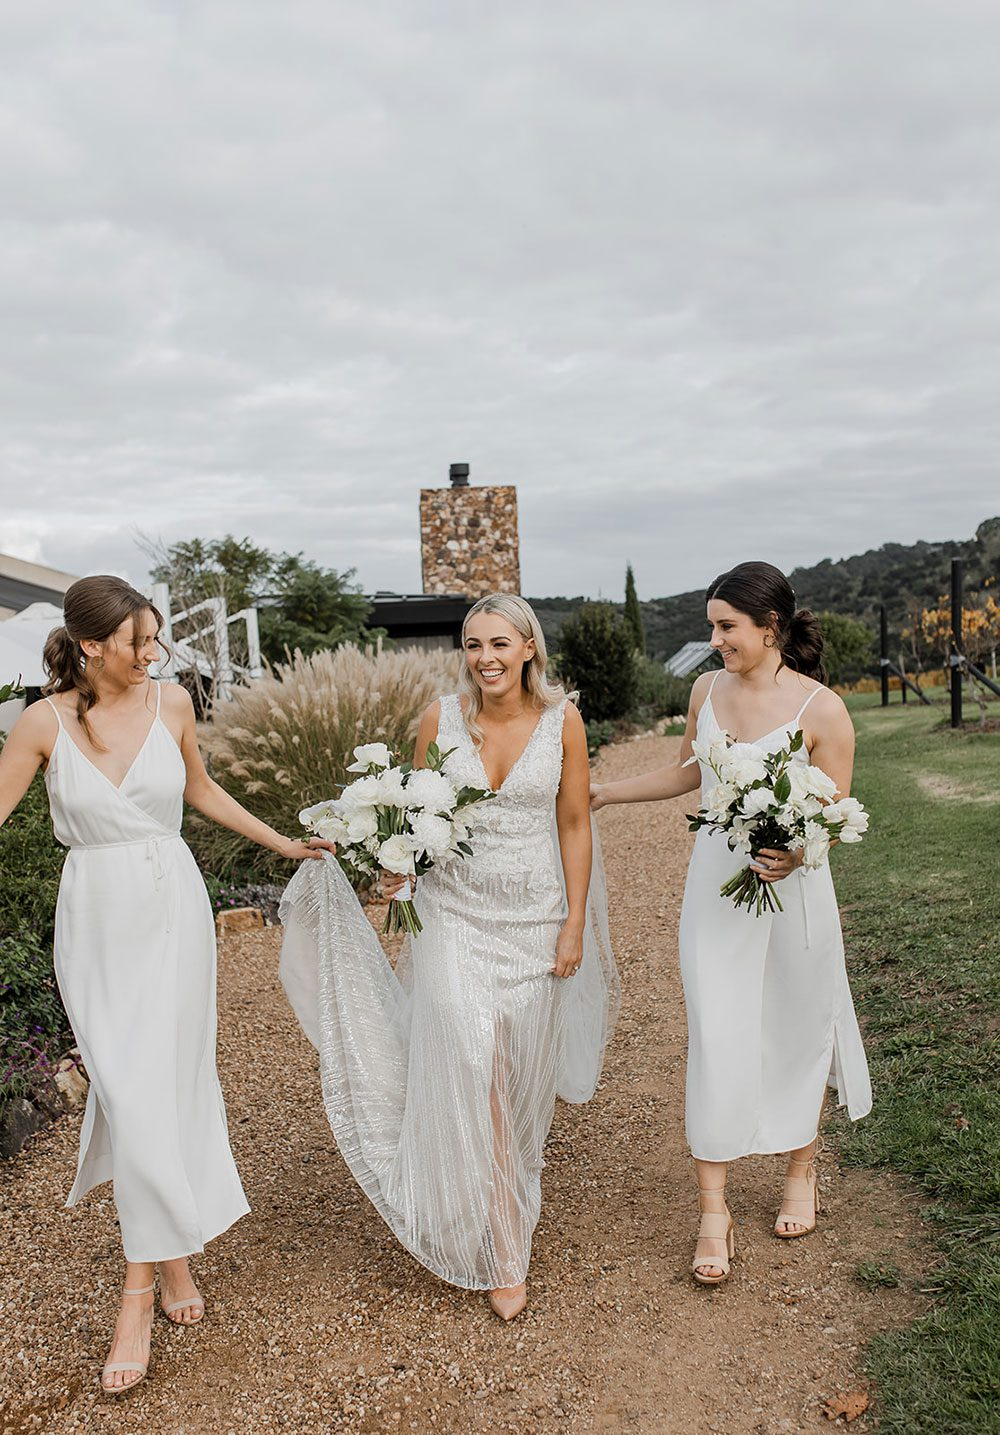 Bride wearing bespoke fitted V-neck gown in beaded lace with front split and sheer beaded overlay by Vinka bridal boutique NZ- walking with bridesmaids holding dress